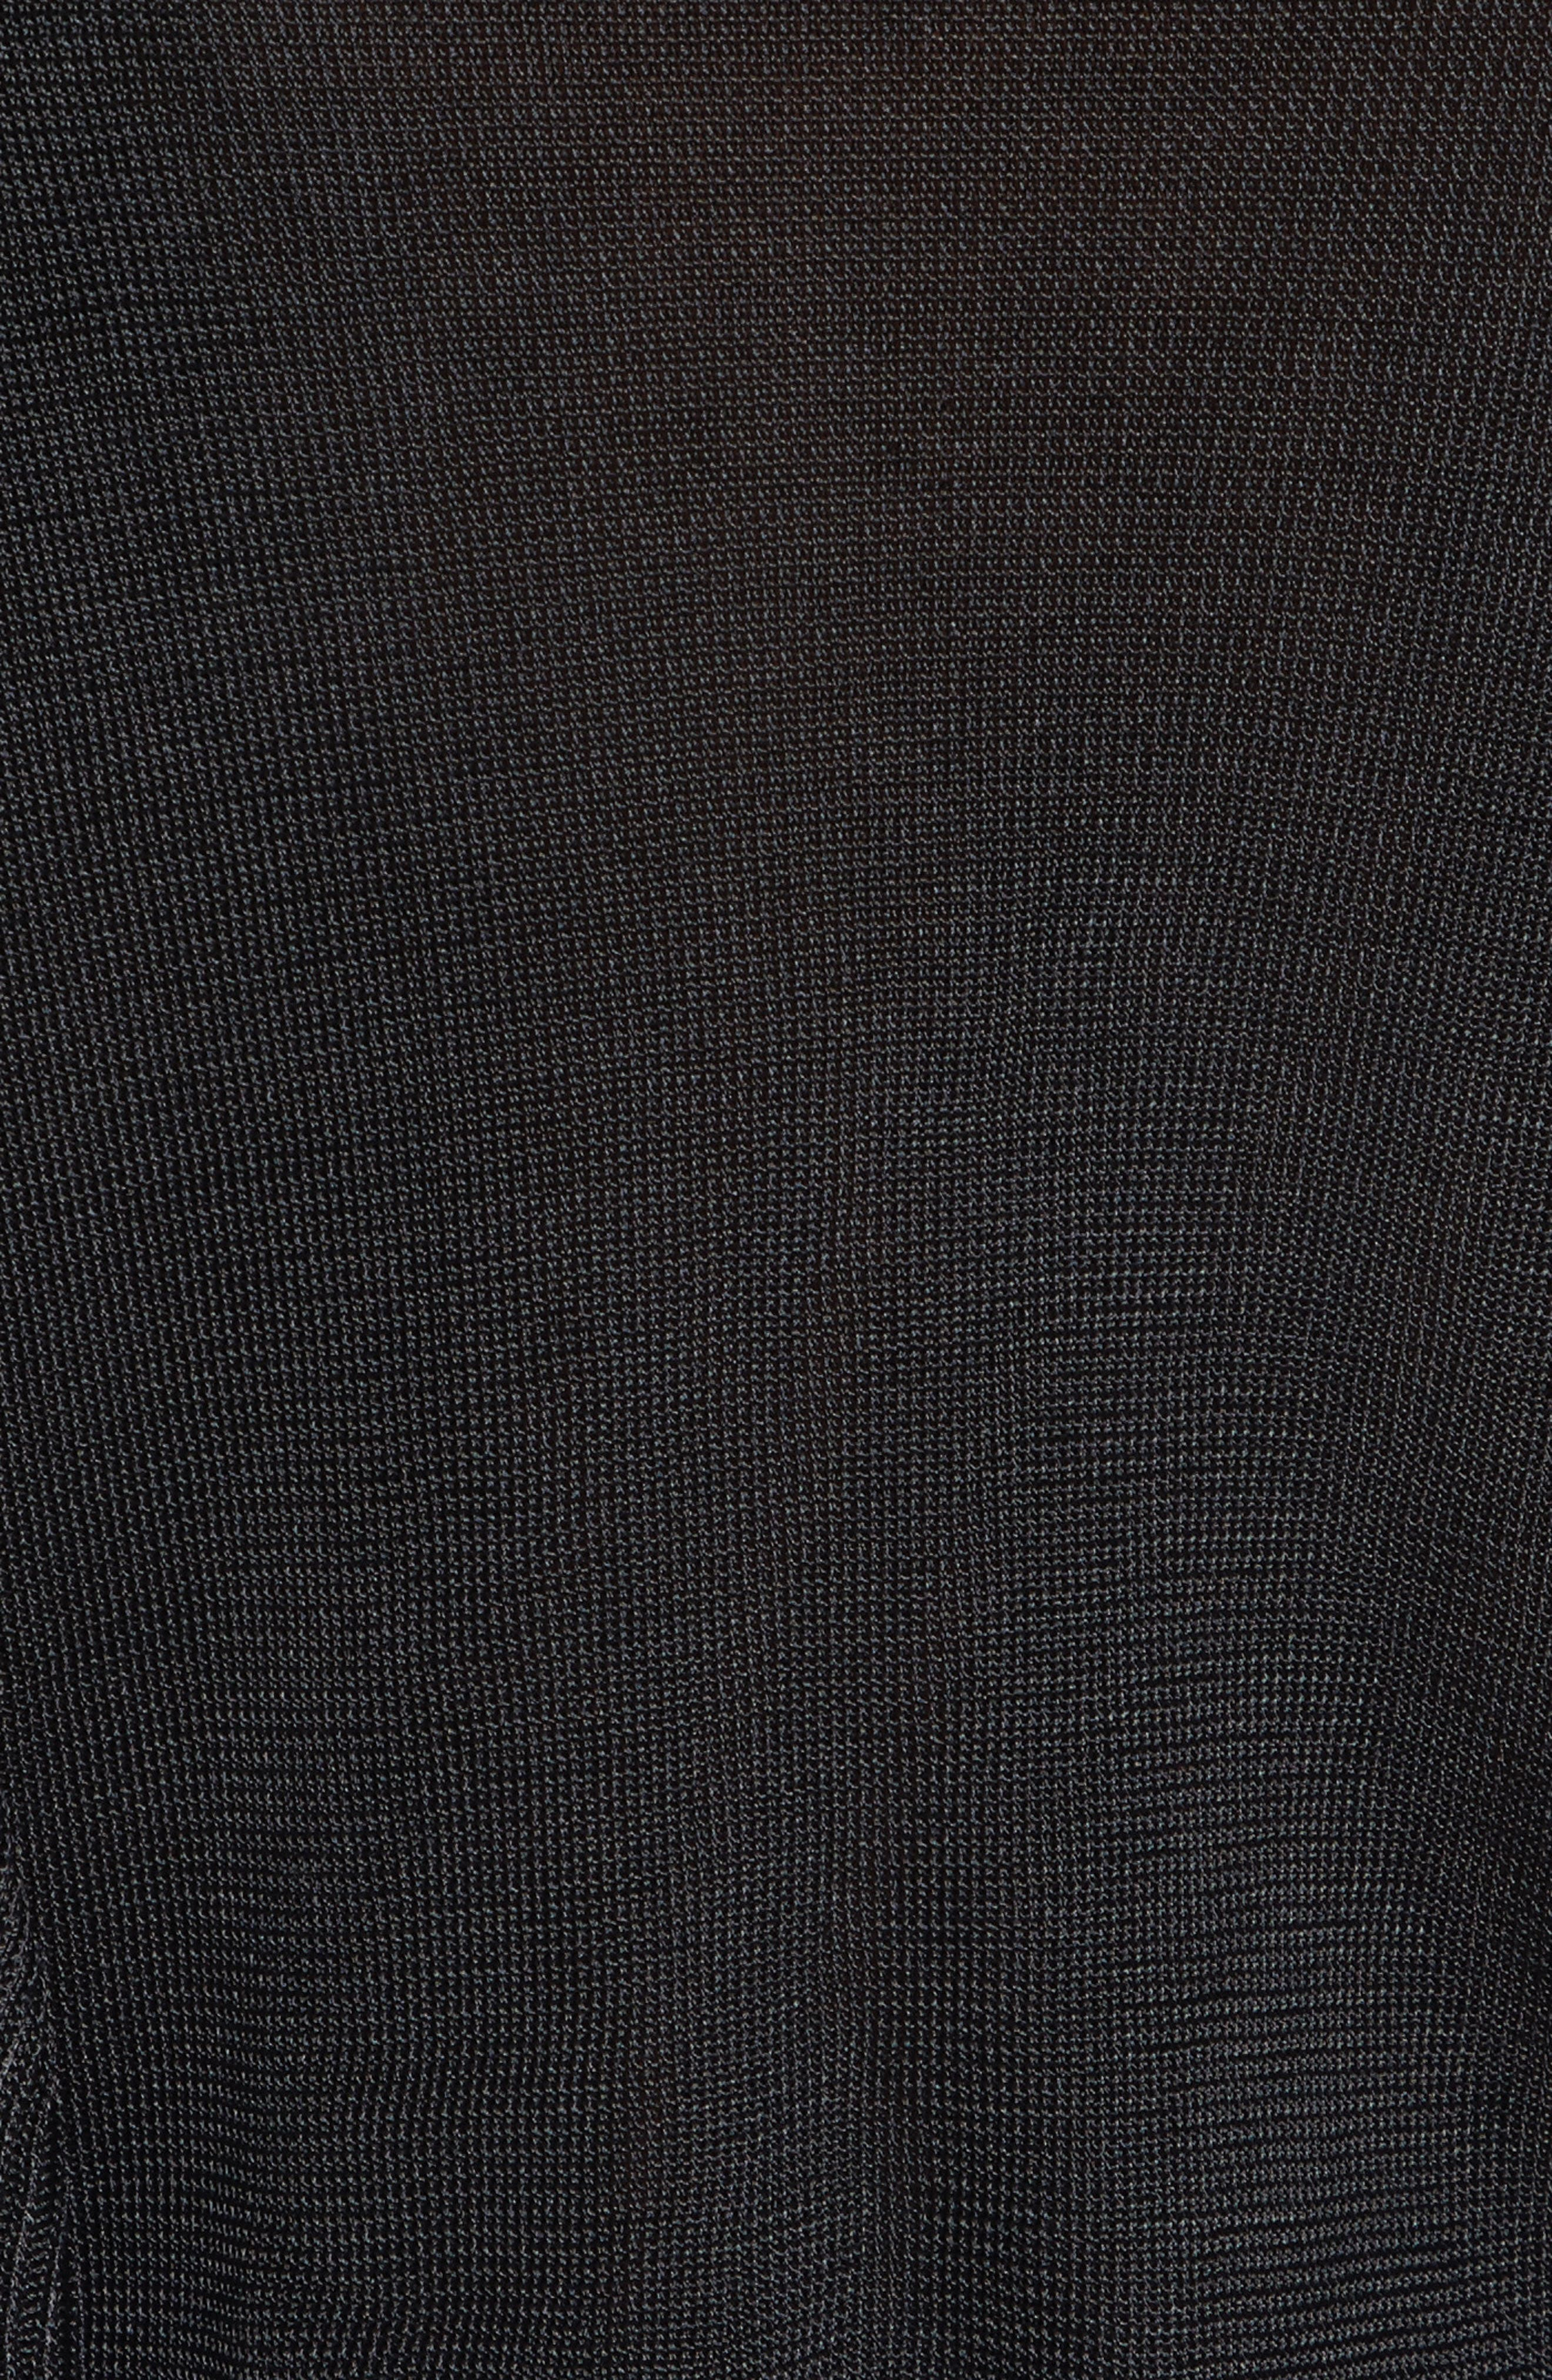 Lou Ruffle Sweater,                             Alternate thumbnail 5, color,                             Black